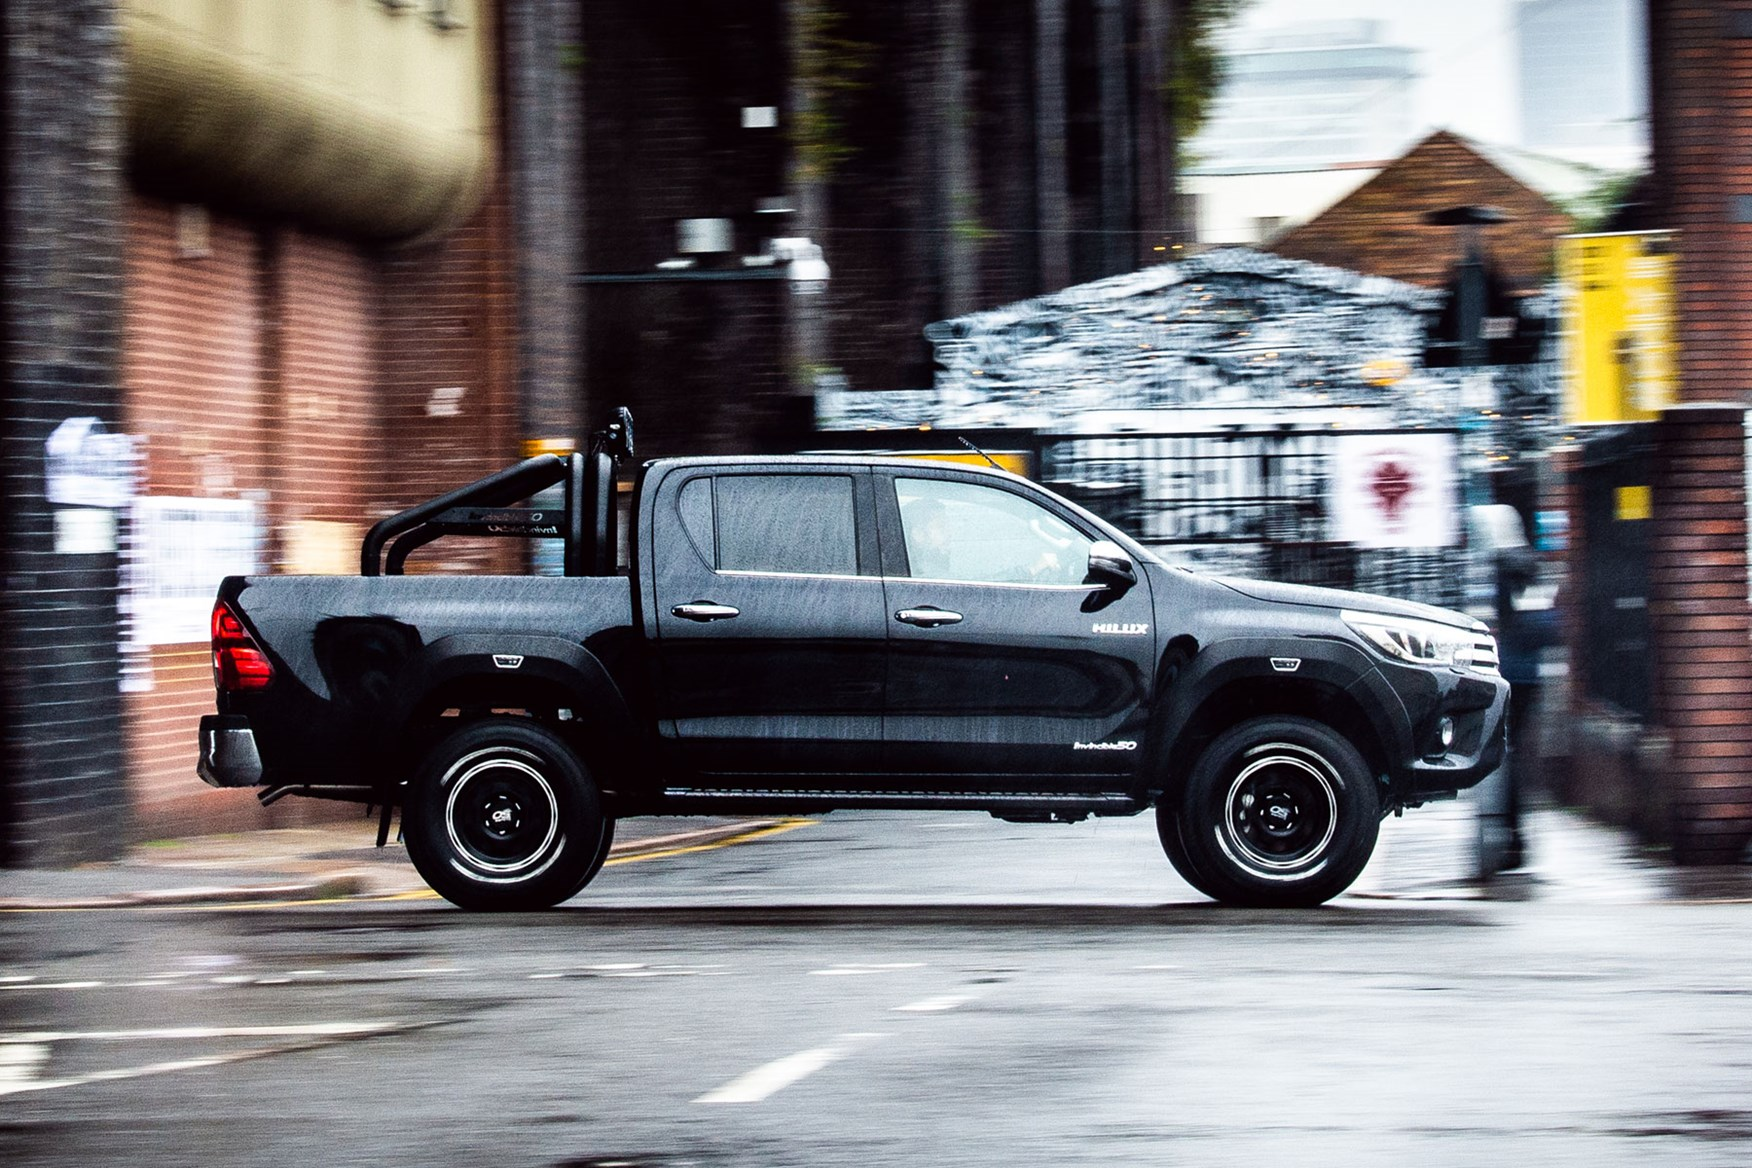 Toyota Hilux Invincible 50 review - driving, side view, in the rain